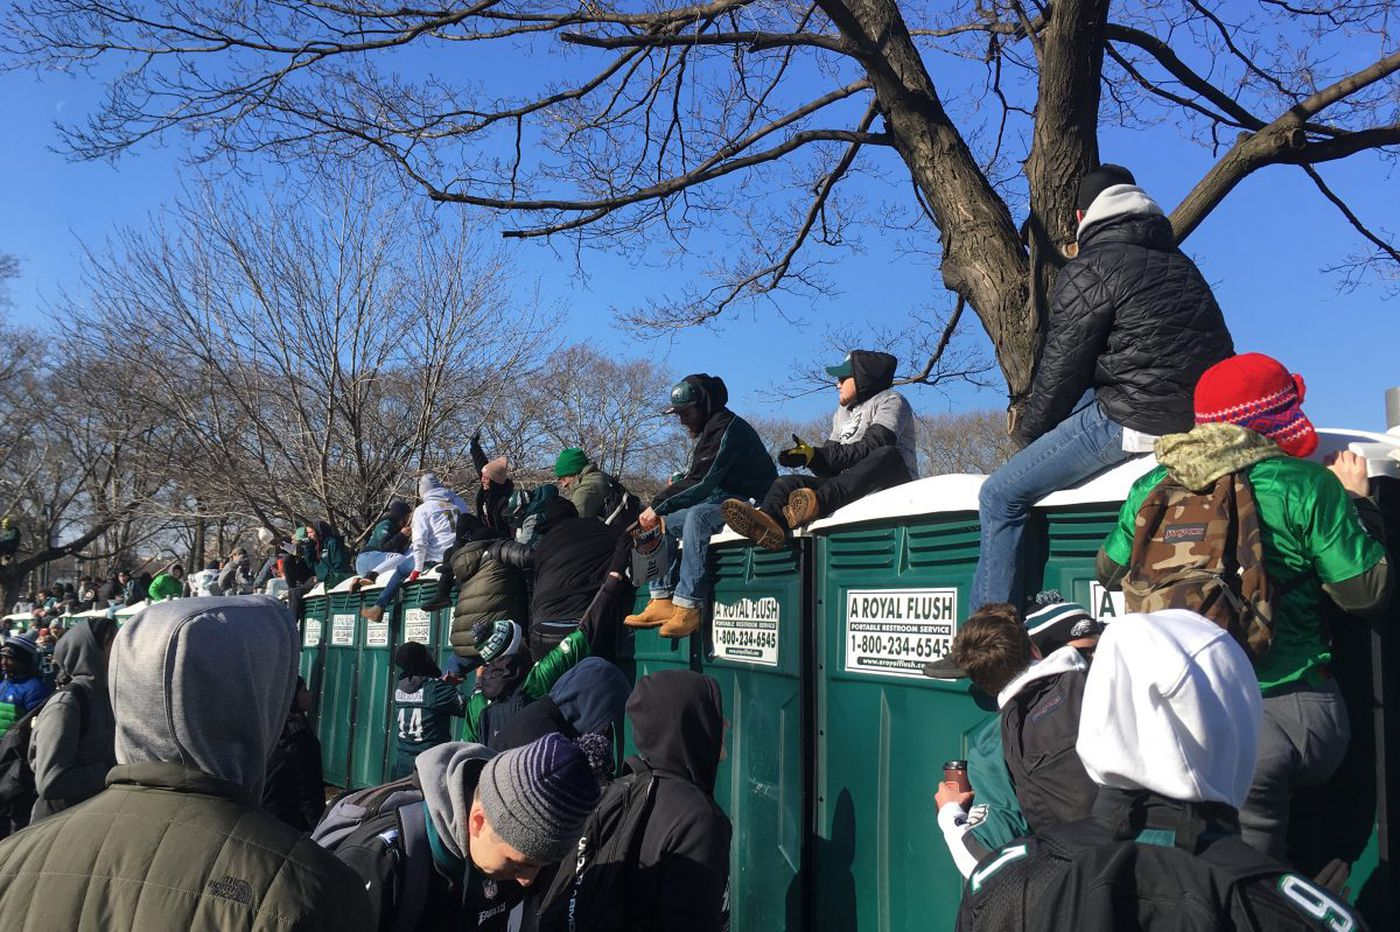 Bathrooms at Eagles parade: Porta potties collapse, coffee cups become urinals